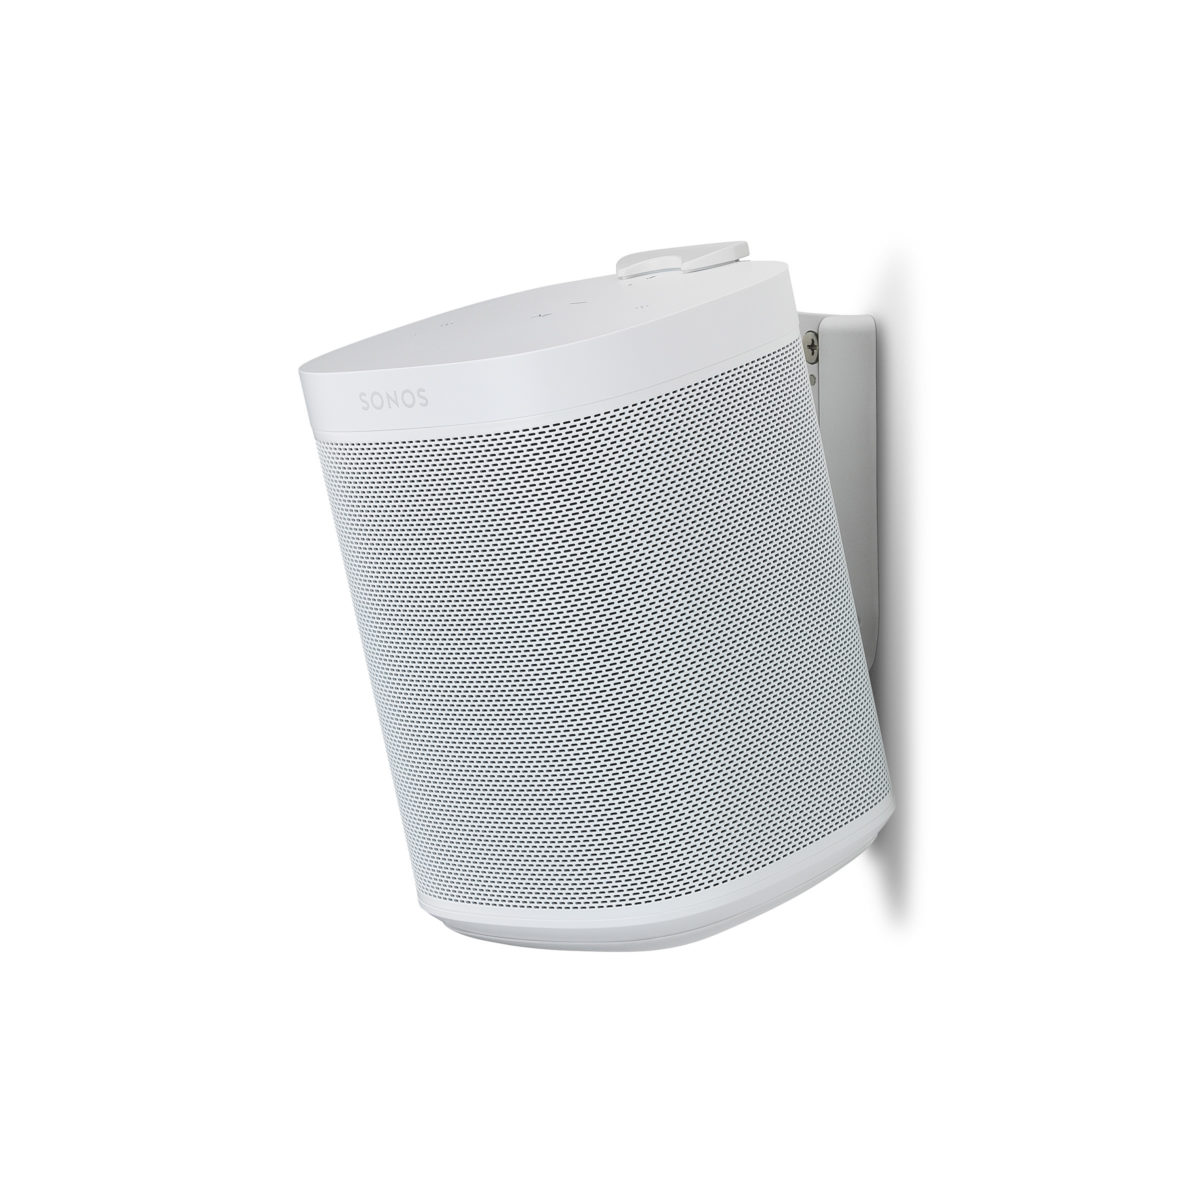 Sonos one muurbeugel wit 6